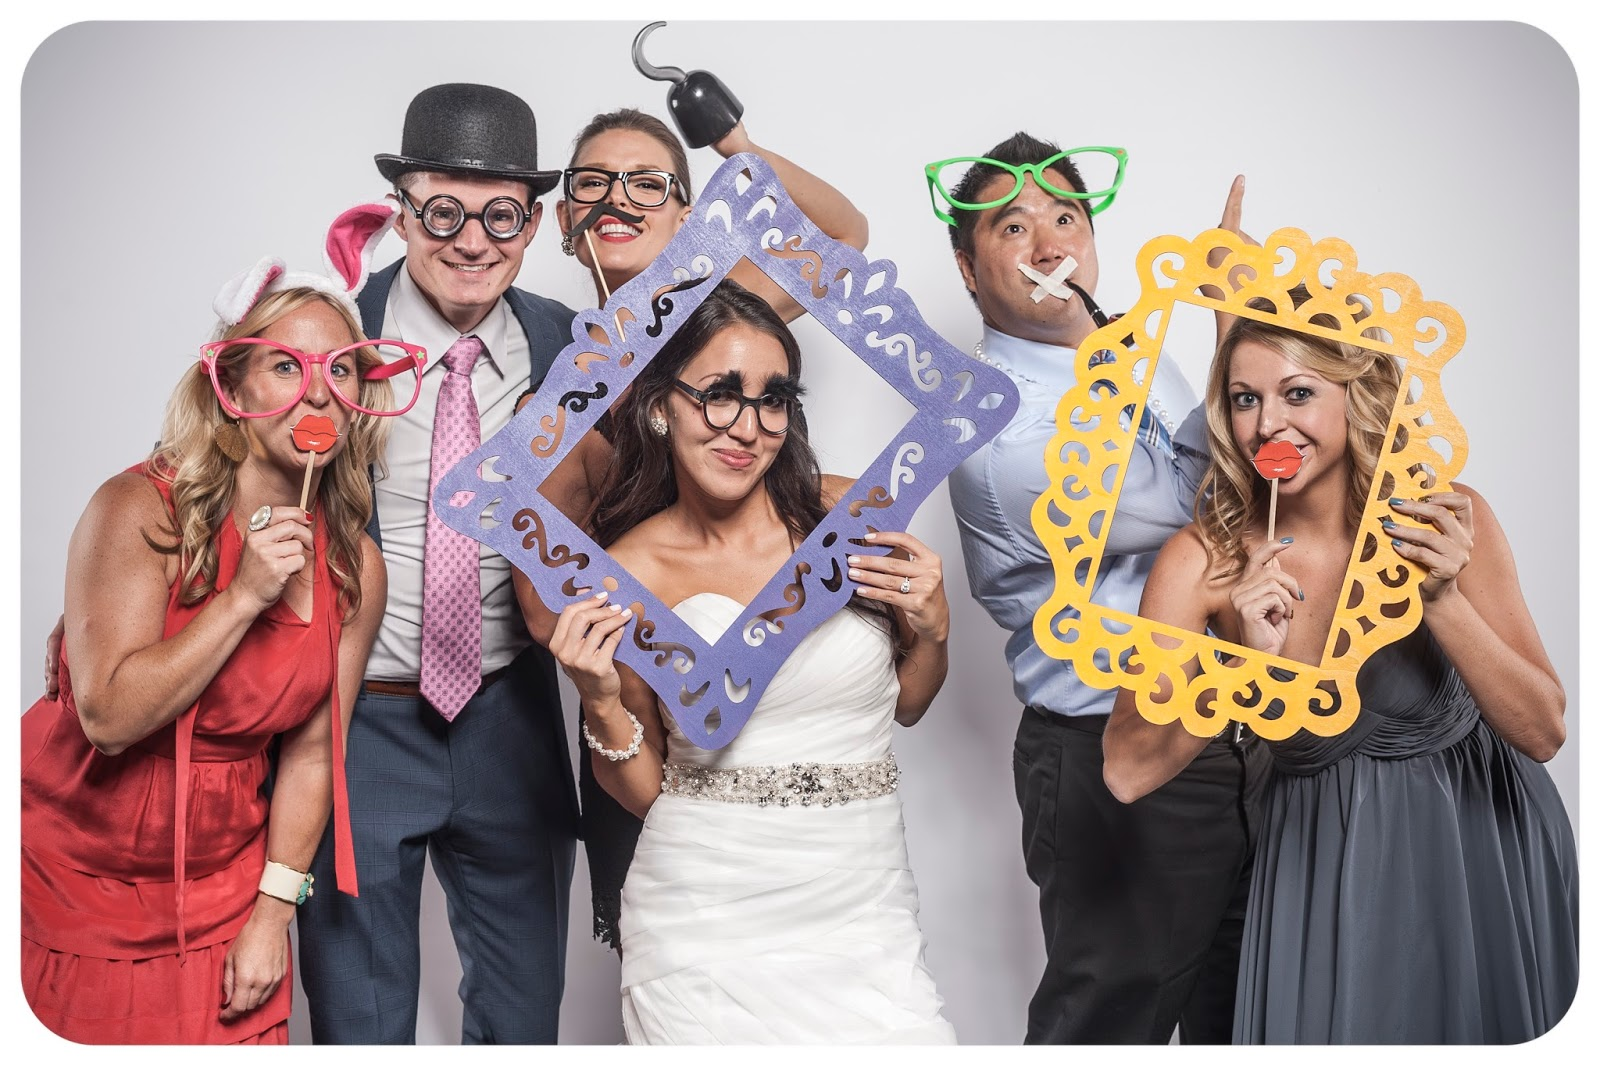 Portal Novia || 10 ideas para organizar un Photobooth